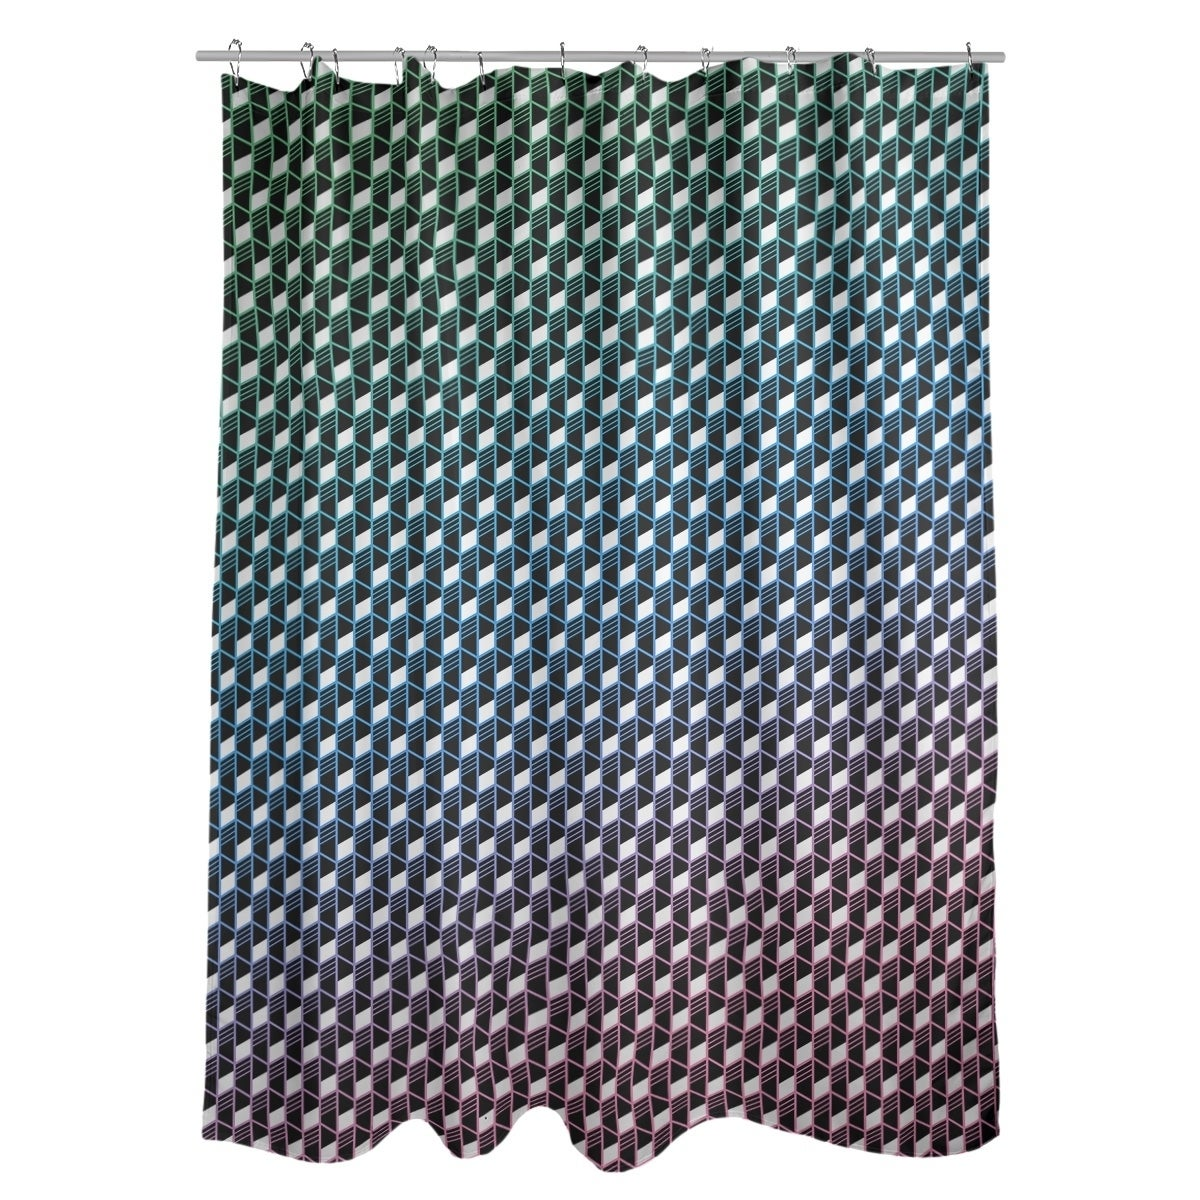 Katelyn Elizabeth Blue Green Pink Geometric Stripes Shower Curtain